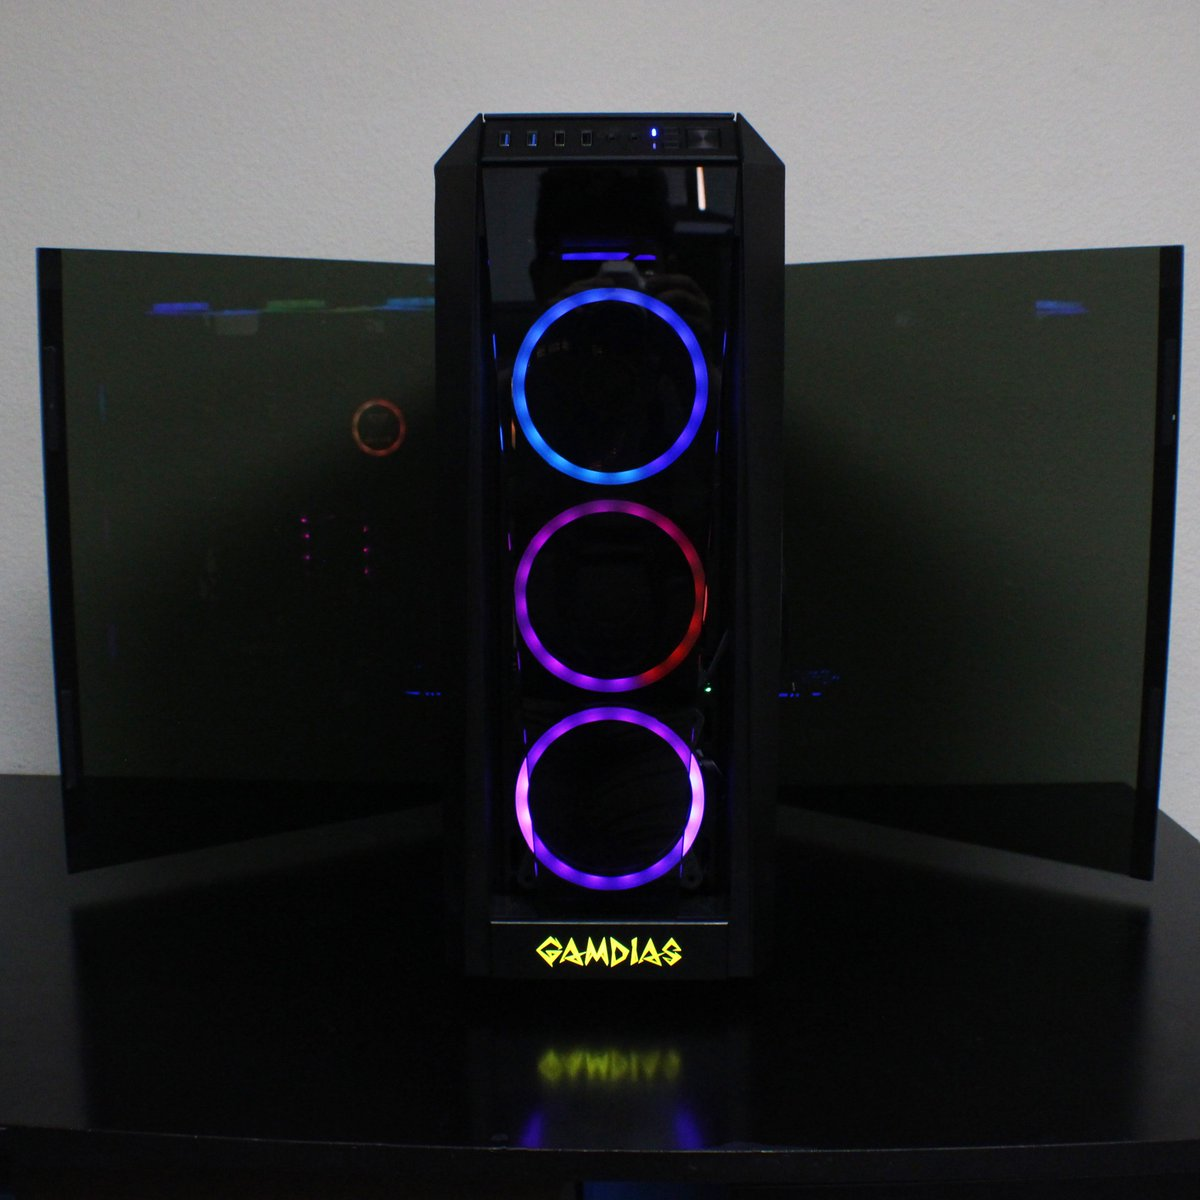 gamdias on twitter need case for your new pc gamdias has you